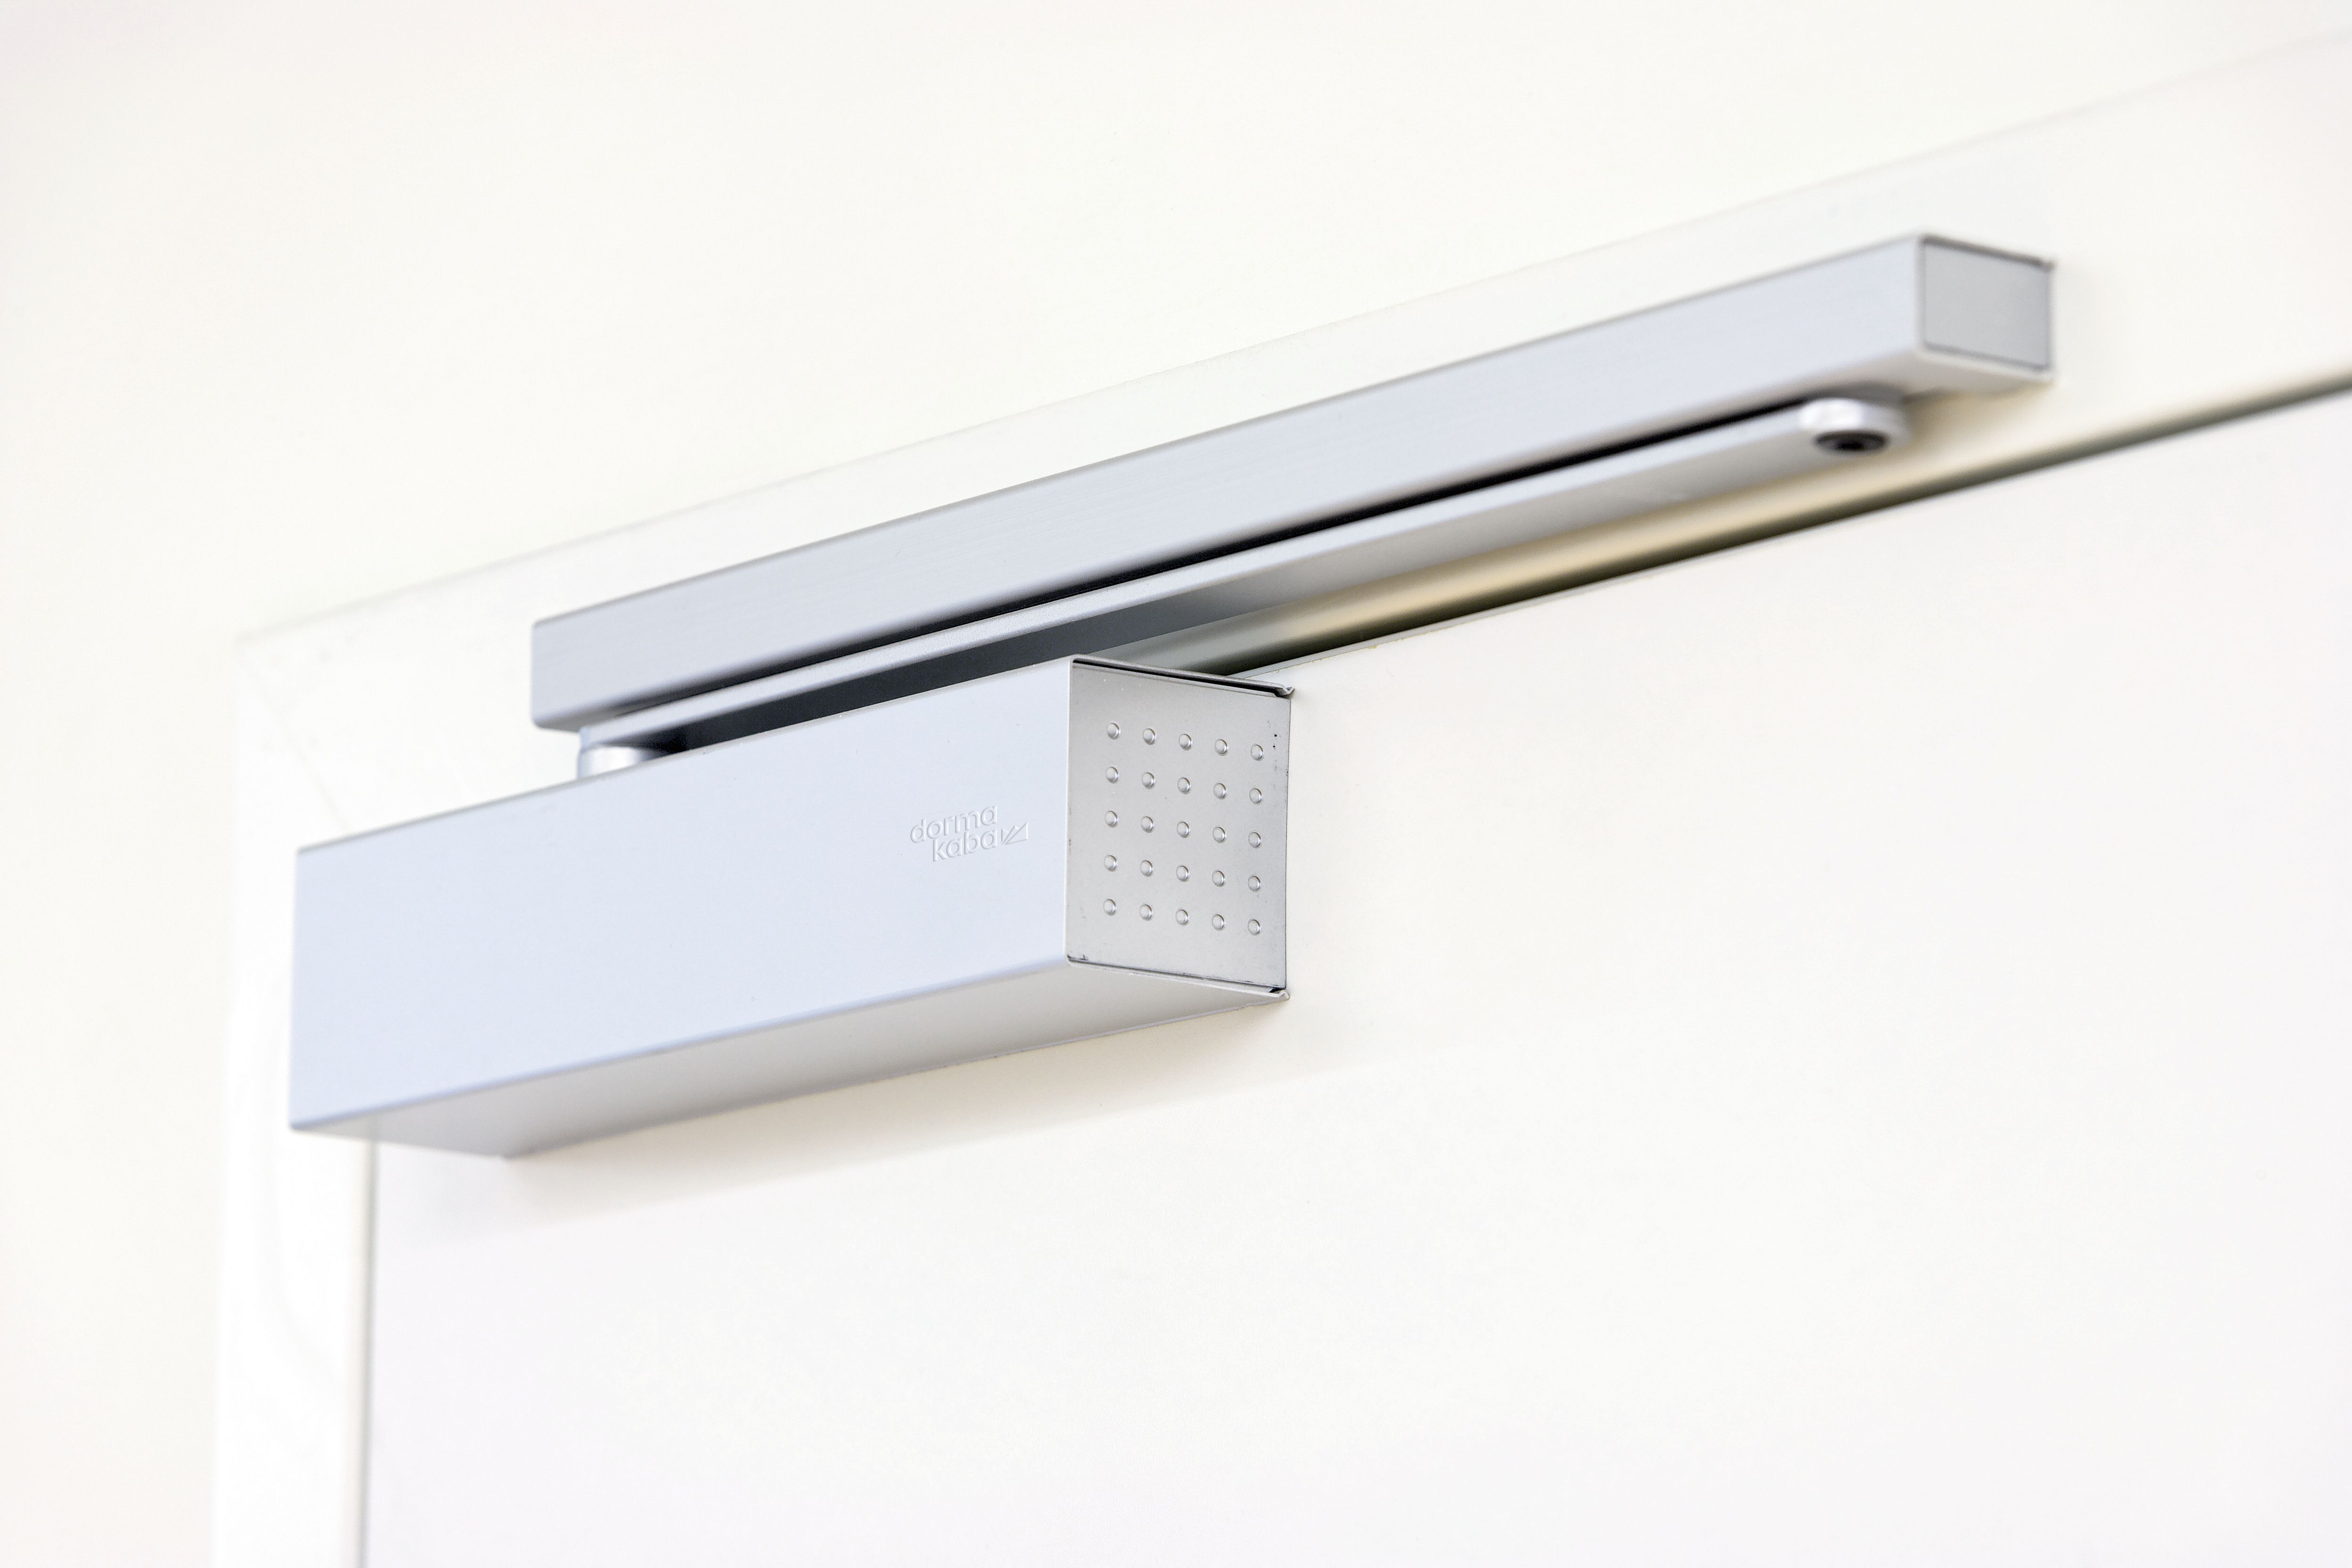 DORMA TS 93 | Cam Action Door Closer System - Slide Channel